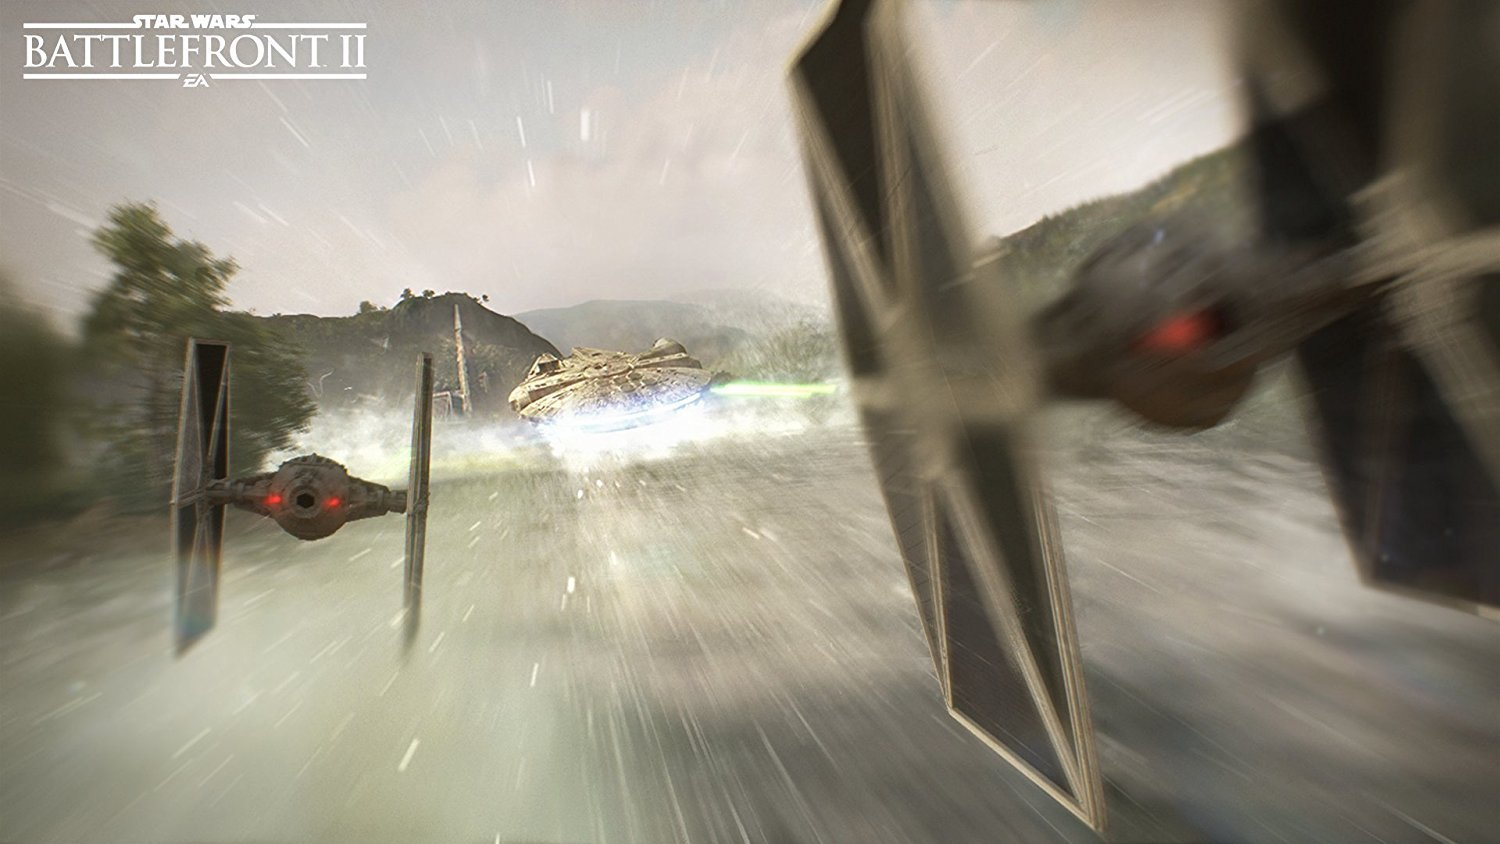 Star Wars: Battlefront II for Xbox One image